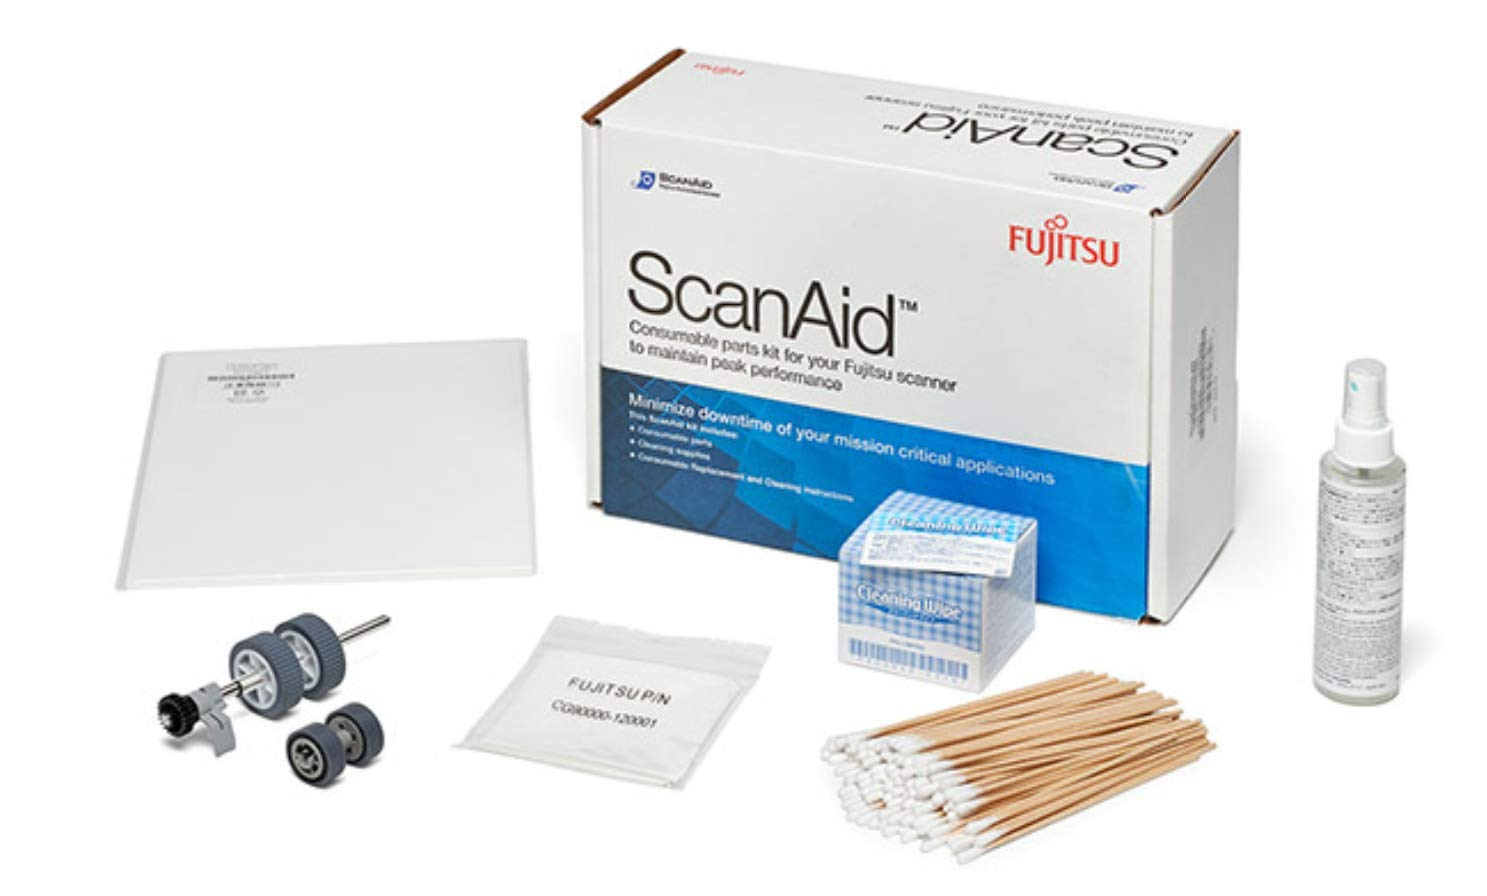 Fujitsu ScanAid Cleaning and Consumable Kit for N7100 and fi-7030